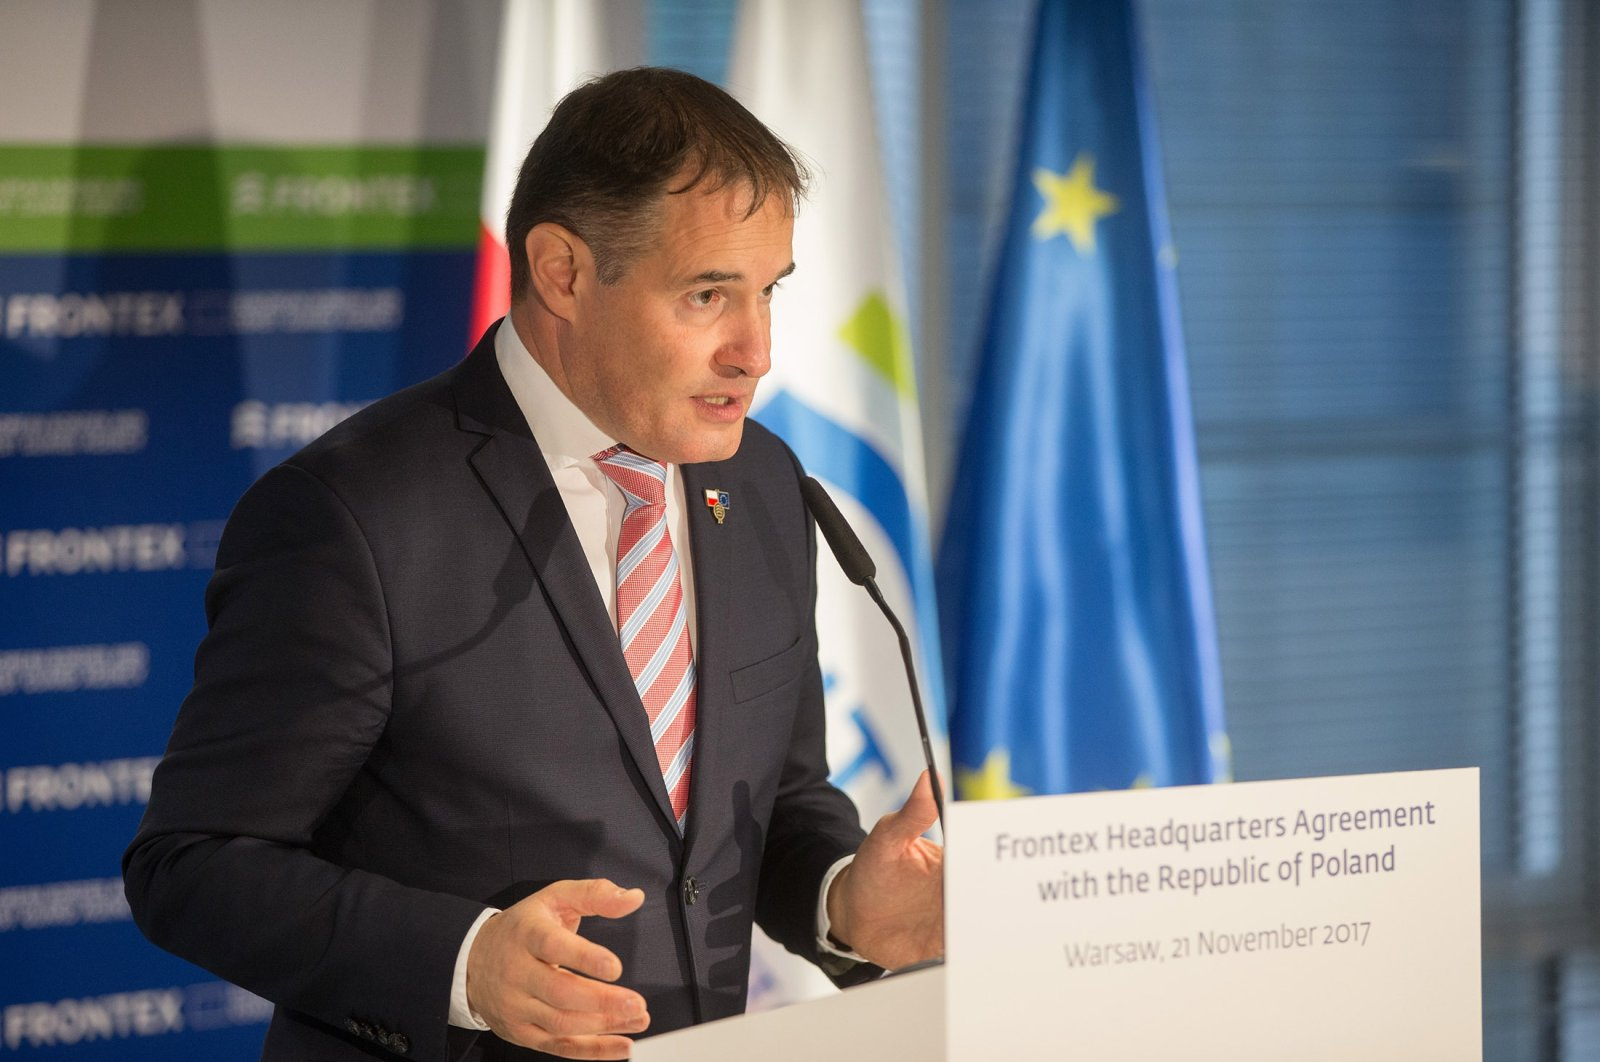 Fabrice Leggeri, Frontex's executive director, attends the press conference after the inauguration ceremony for the Frontex headquarter, in Warsaw, Poland, Nov. 21, 2017 (Getty Images)